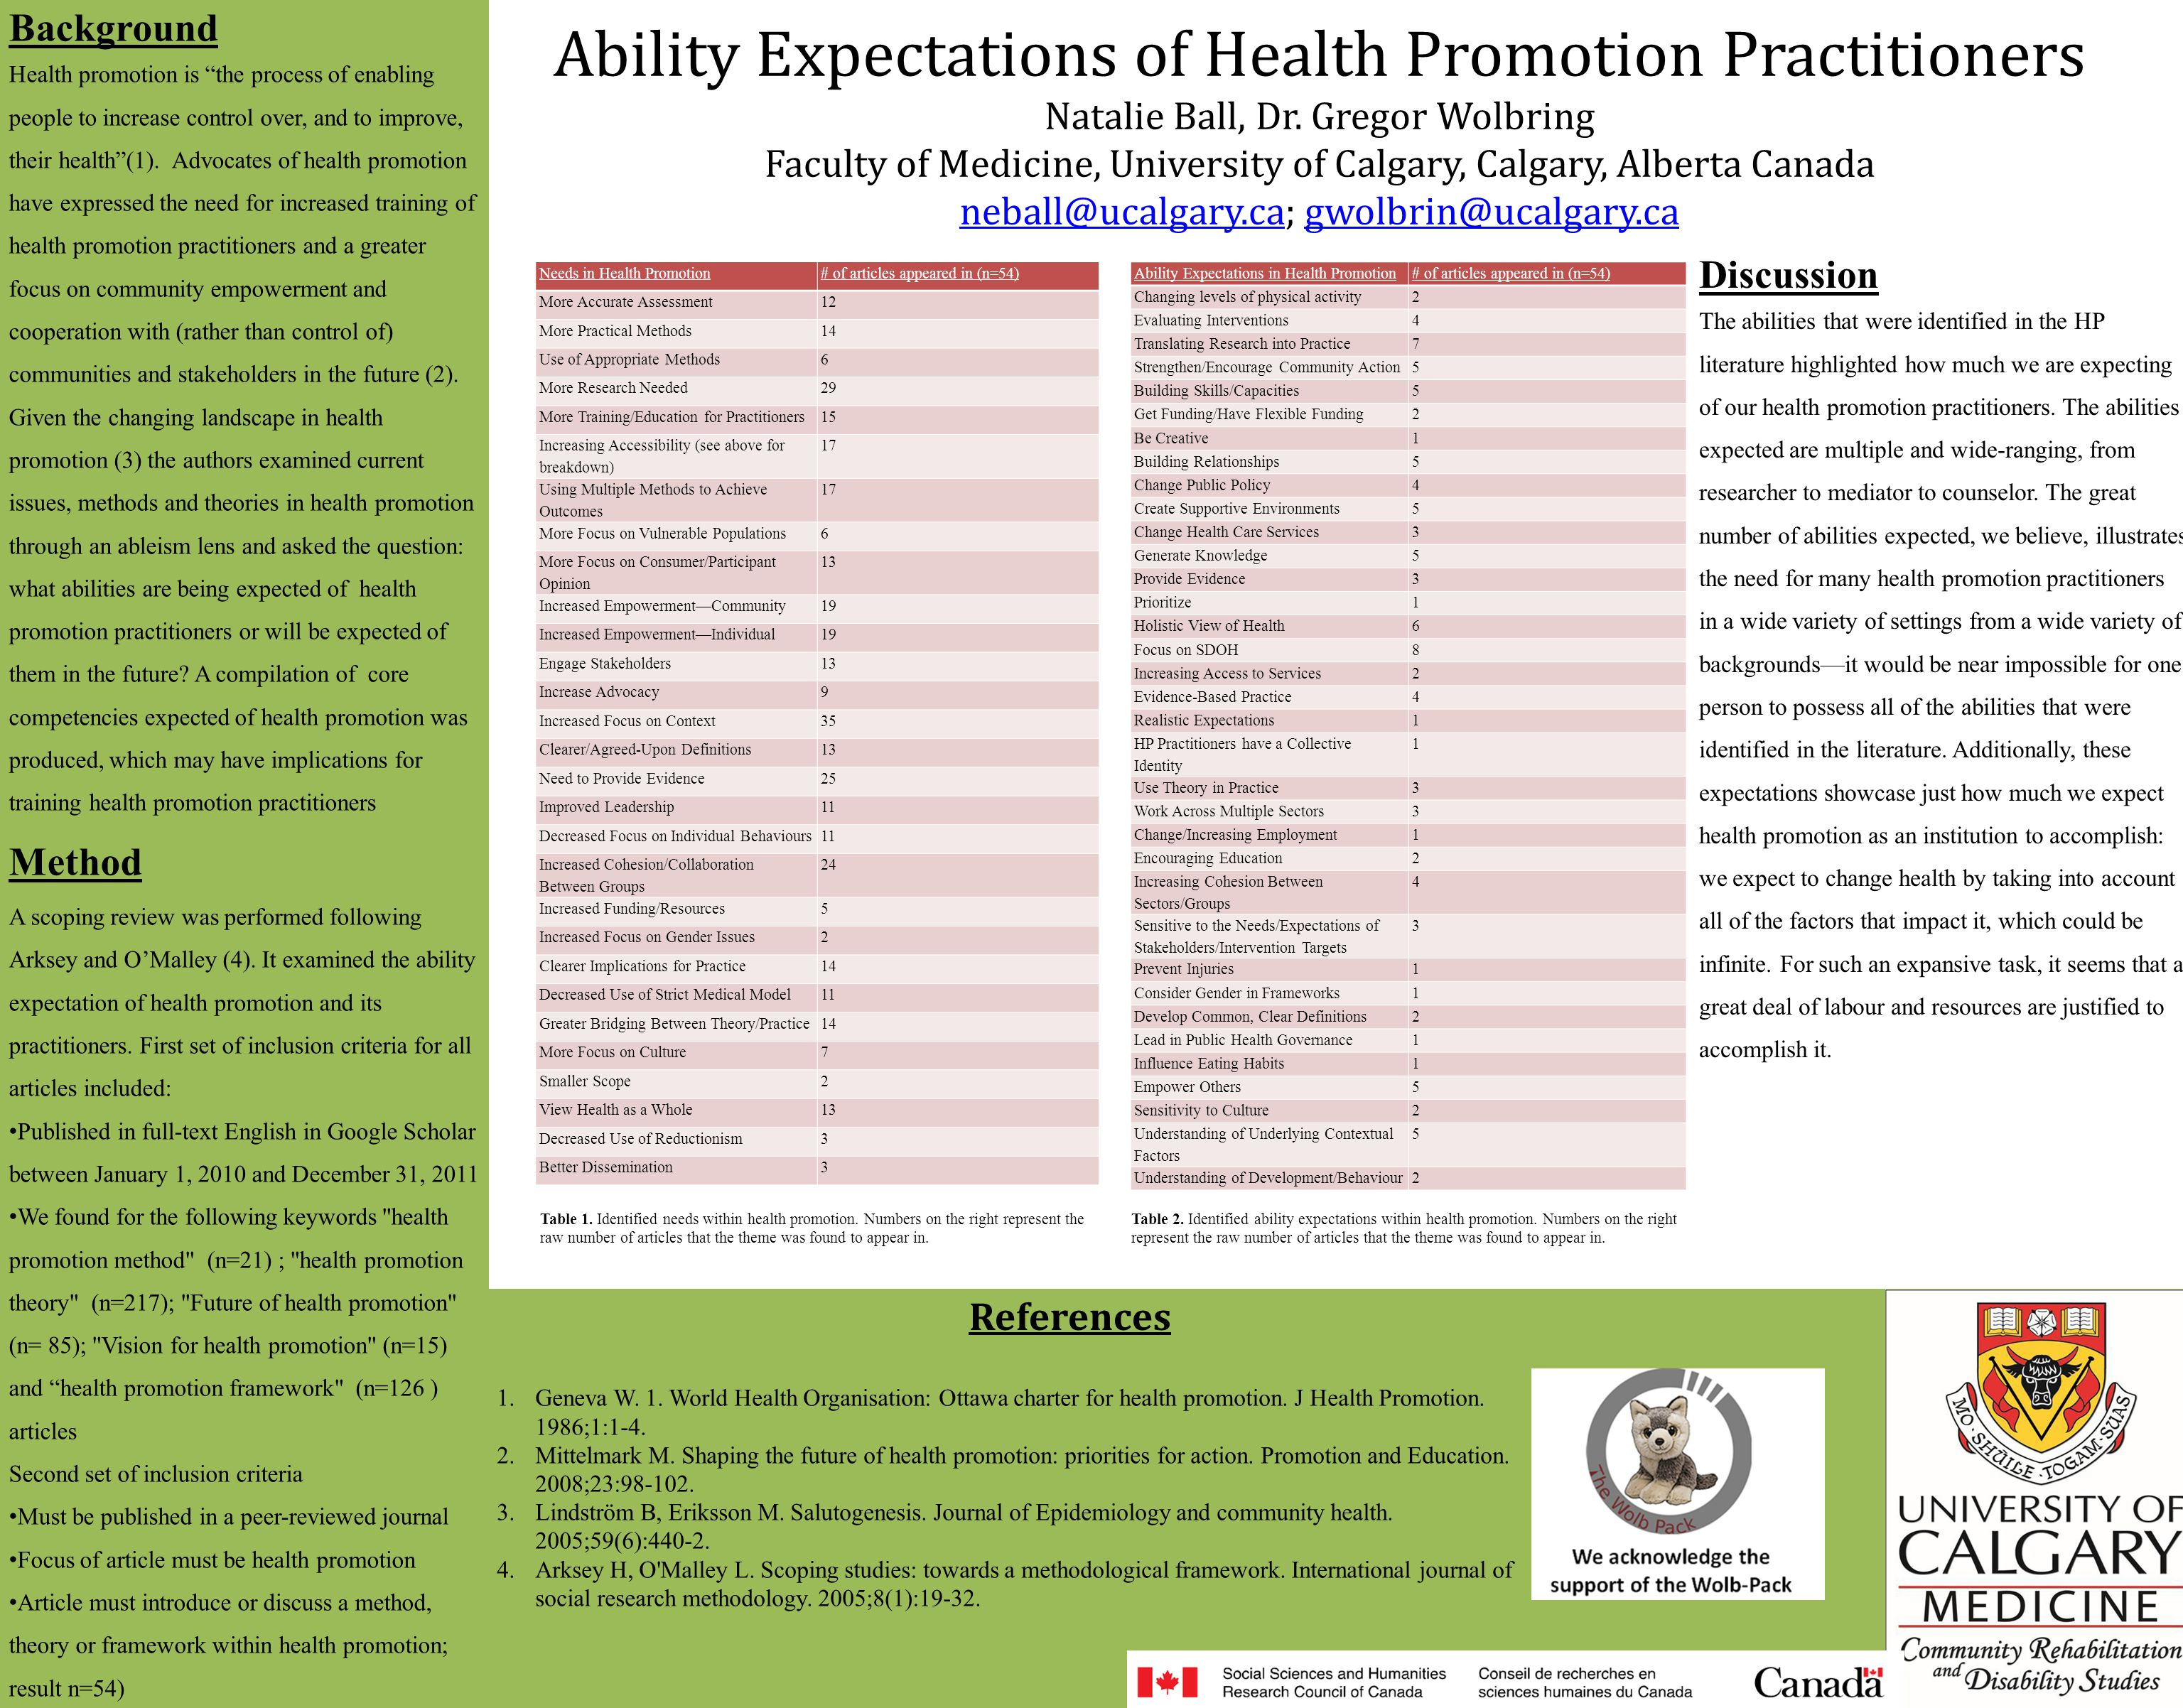 Ability Expectations of Health Promotion Practitioners Natalie Ball, Dr. Gregor Wolbring Faculty of Medicine, University of Calgary, Calgary, Alberta